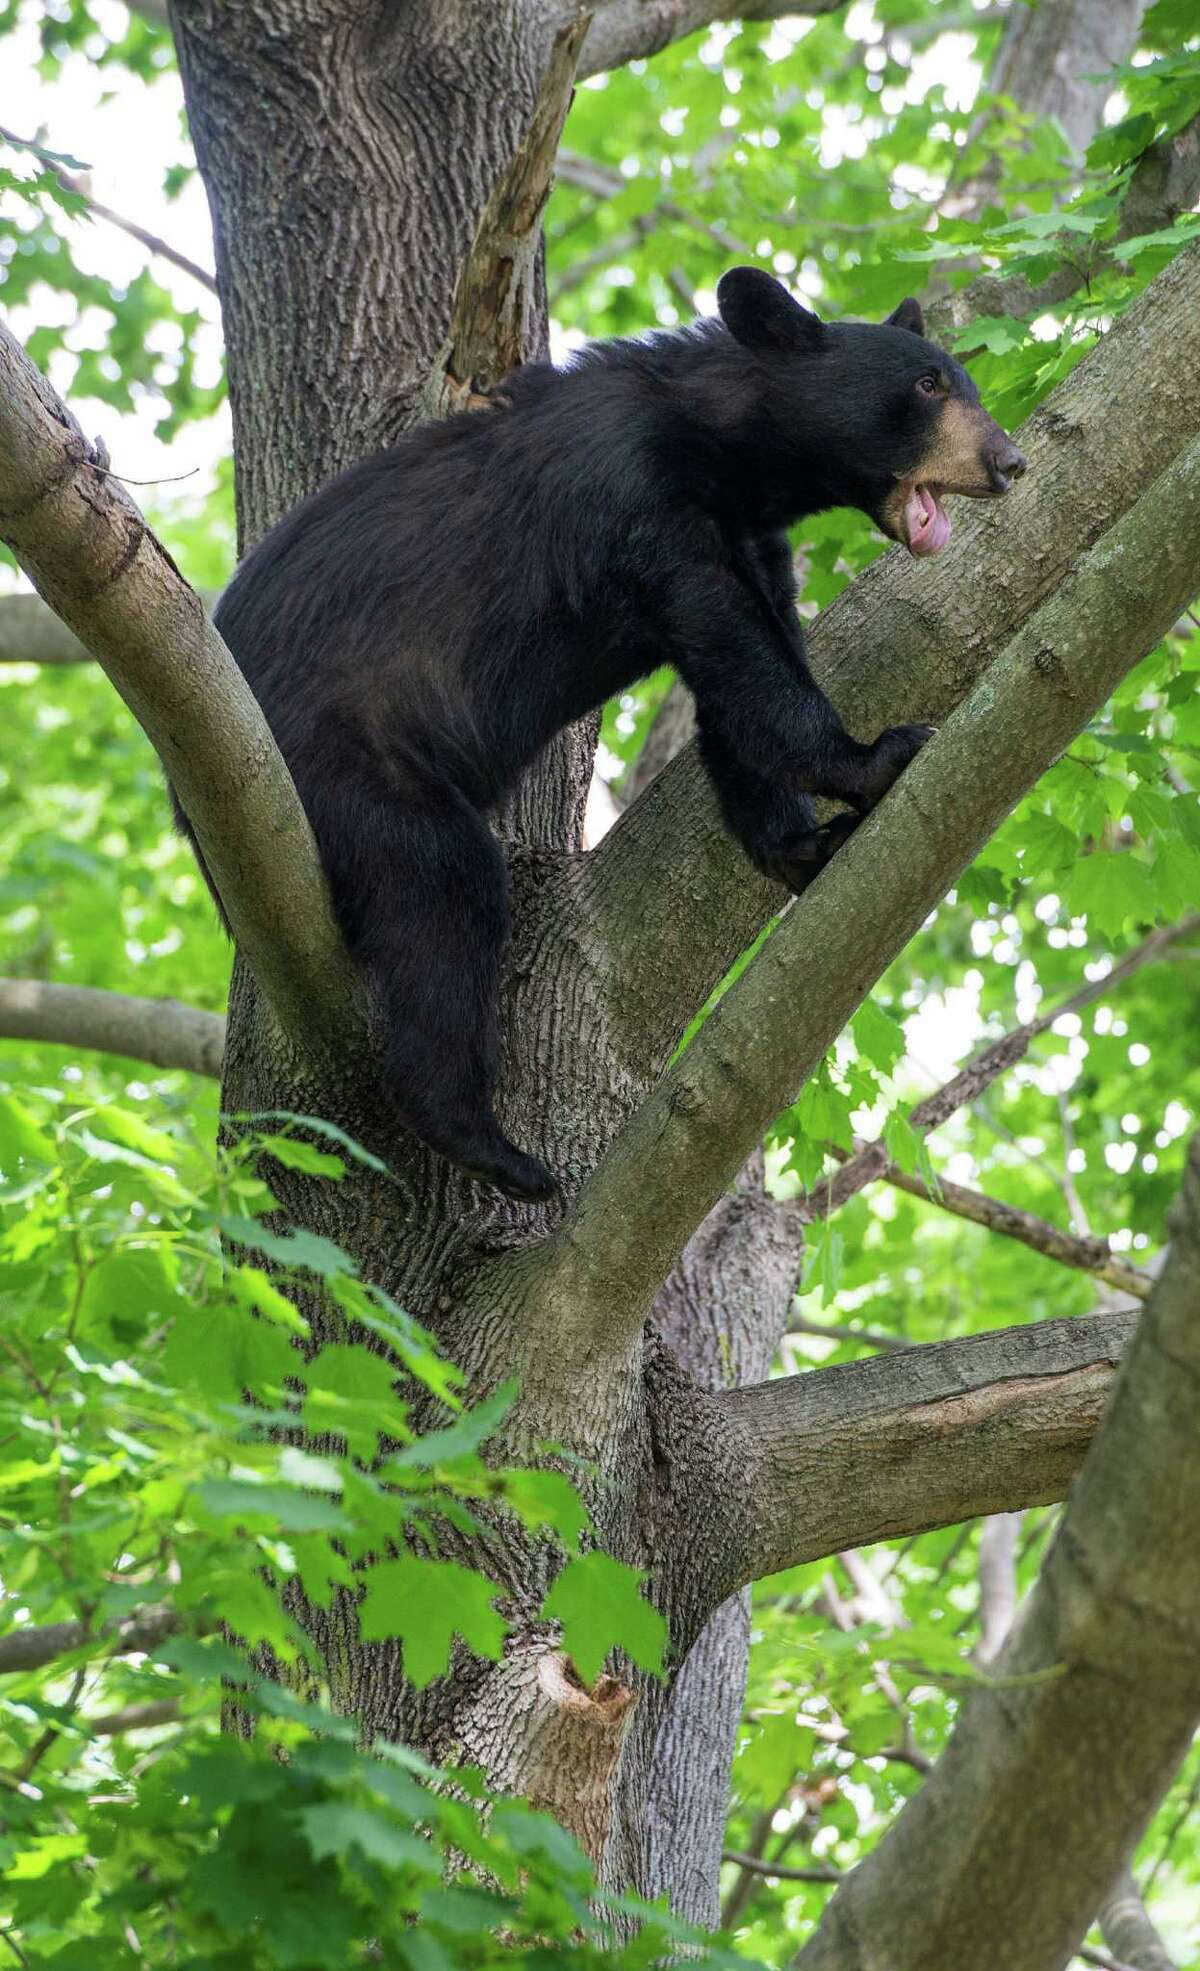 Officials caught up with a bear in a backyard tree in of a home on Mayfair Road, Fairfield, Conn. on Thursday, June 25, 2015. Police received several reports of bears roaming a wide area of the town, leading them to believe there may be more than one bear.